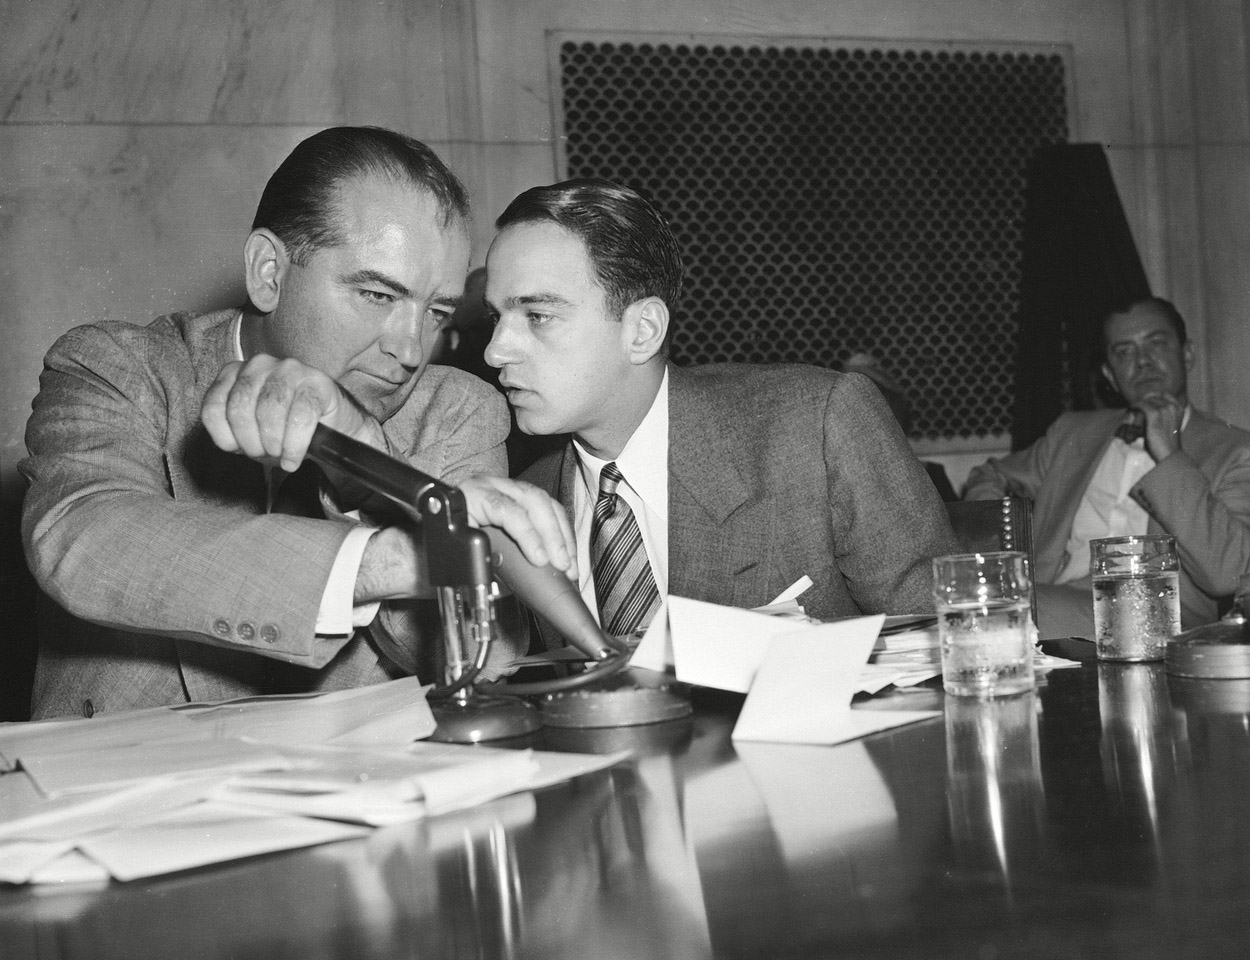 Roy M. Cohn and Joseph McCarthy in Where's My Roy Cohn? (2019)